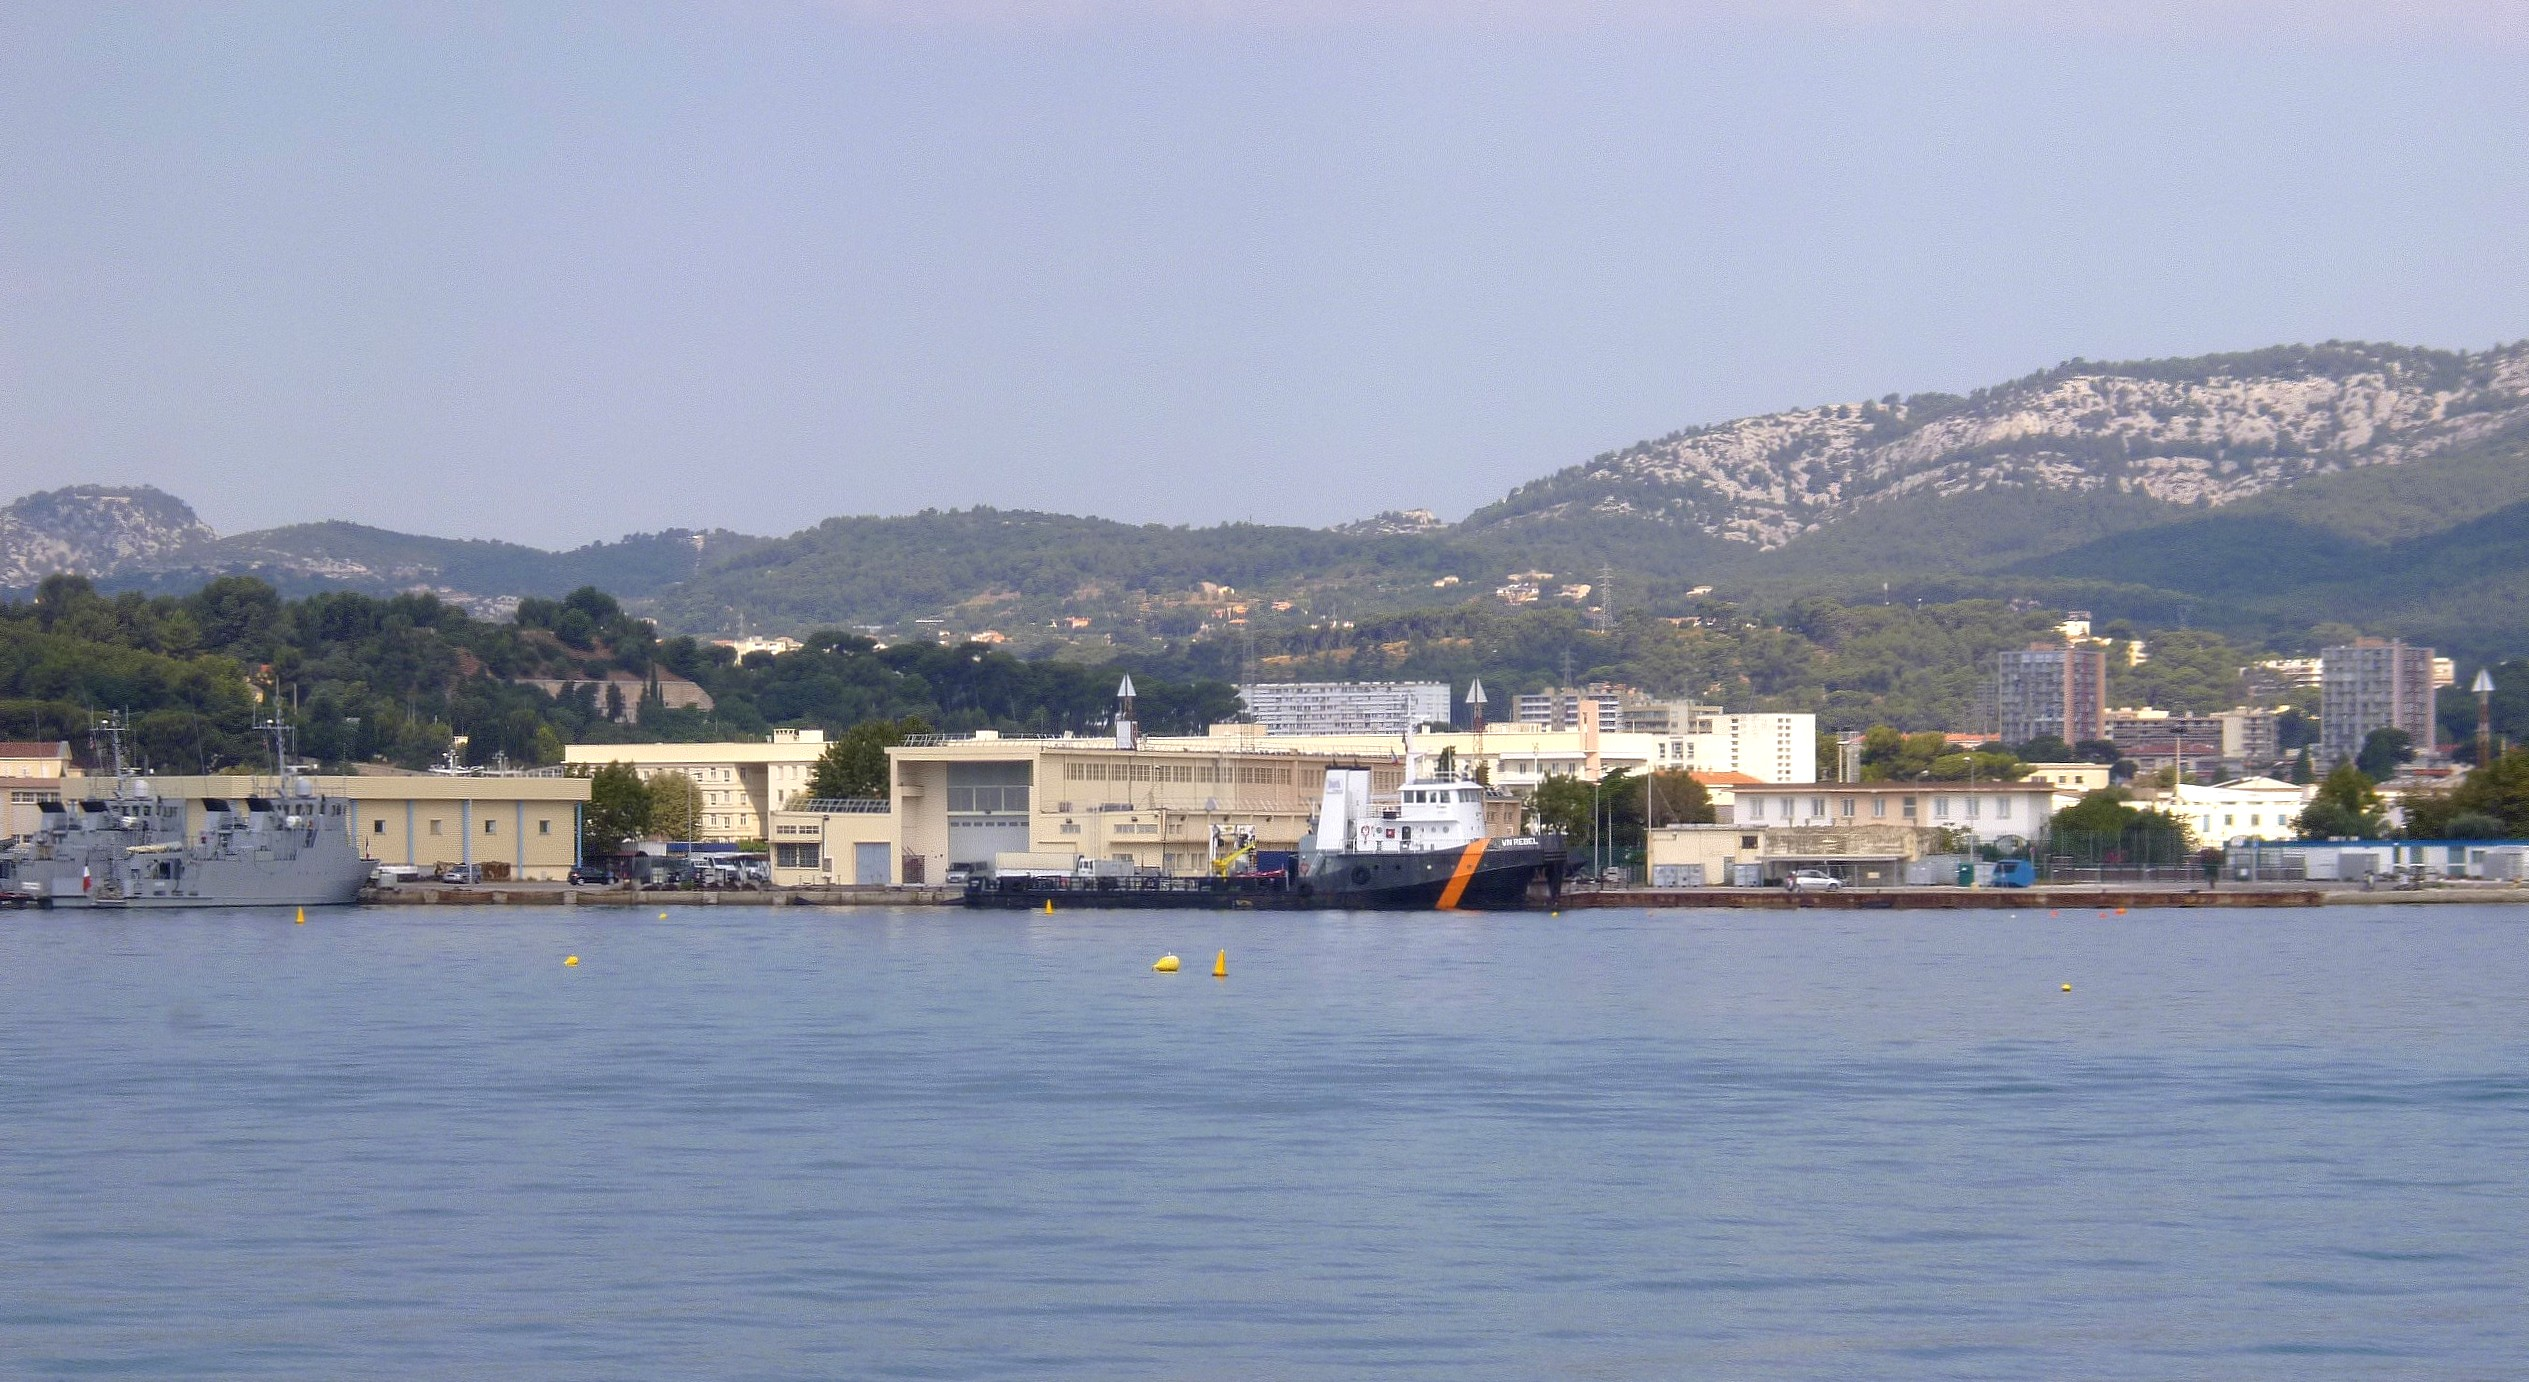 Les news en images du port de TOULON - Page 37 9565006492_390c783532_o